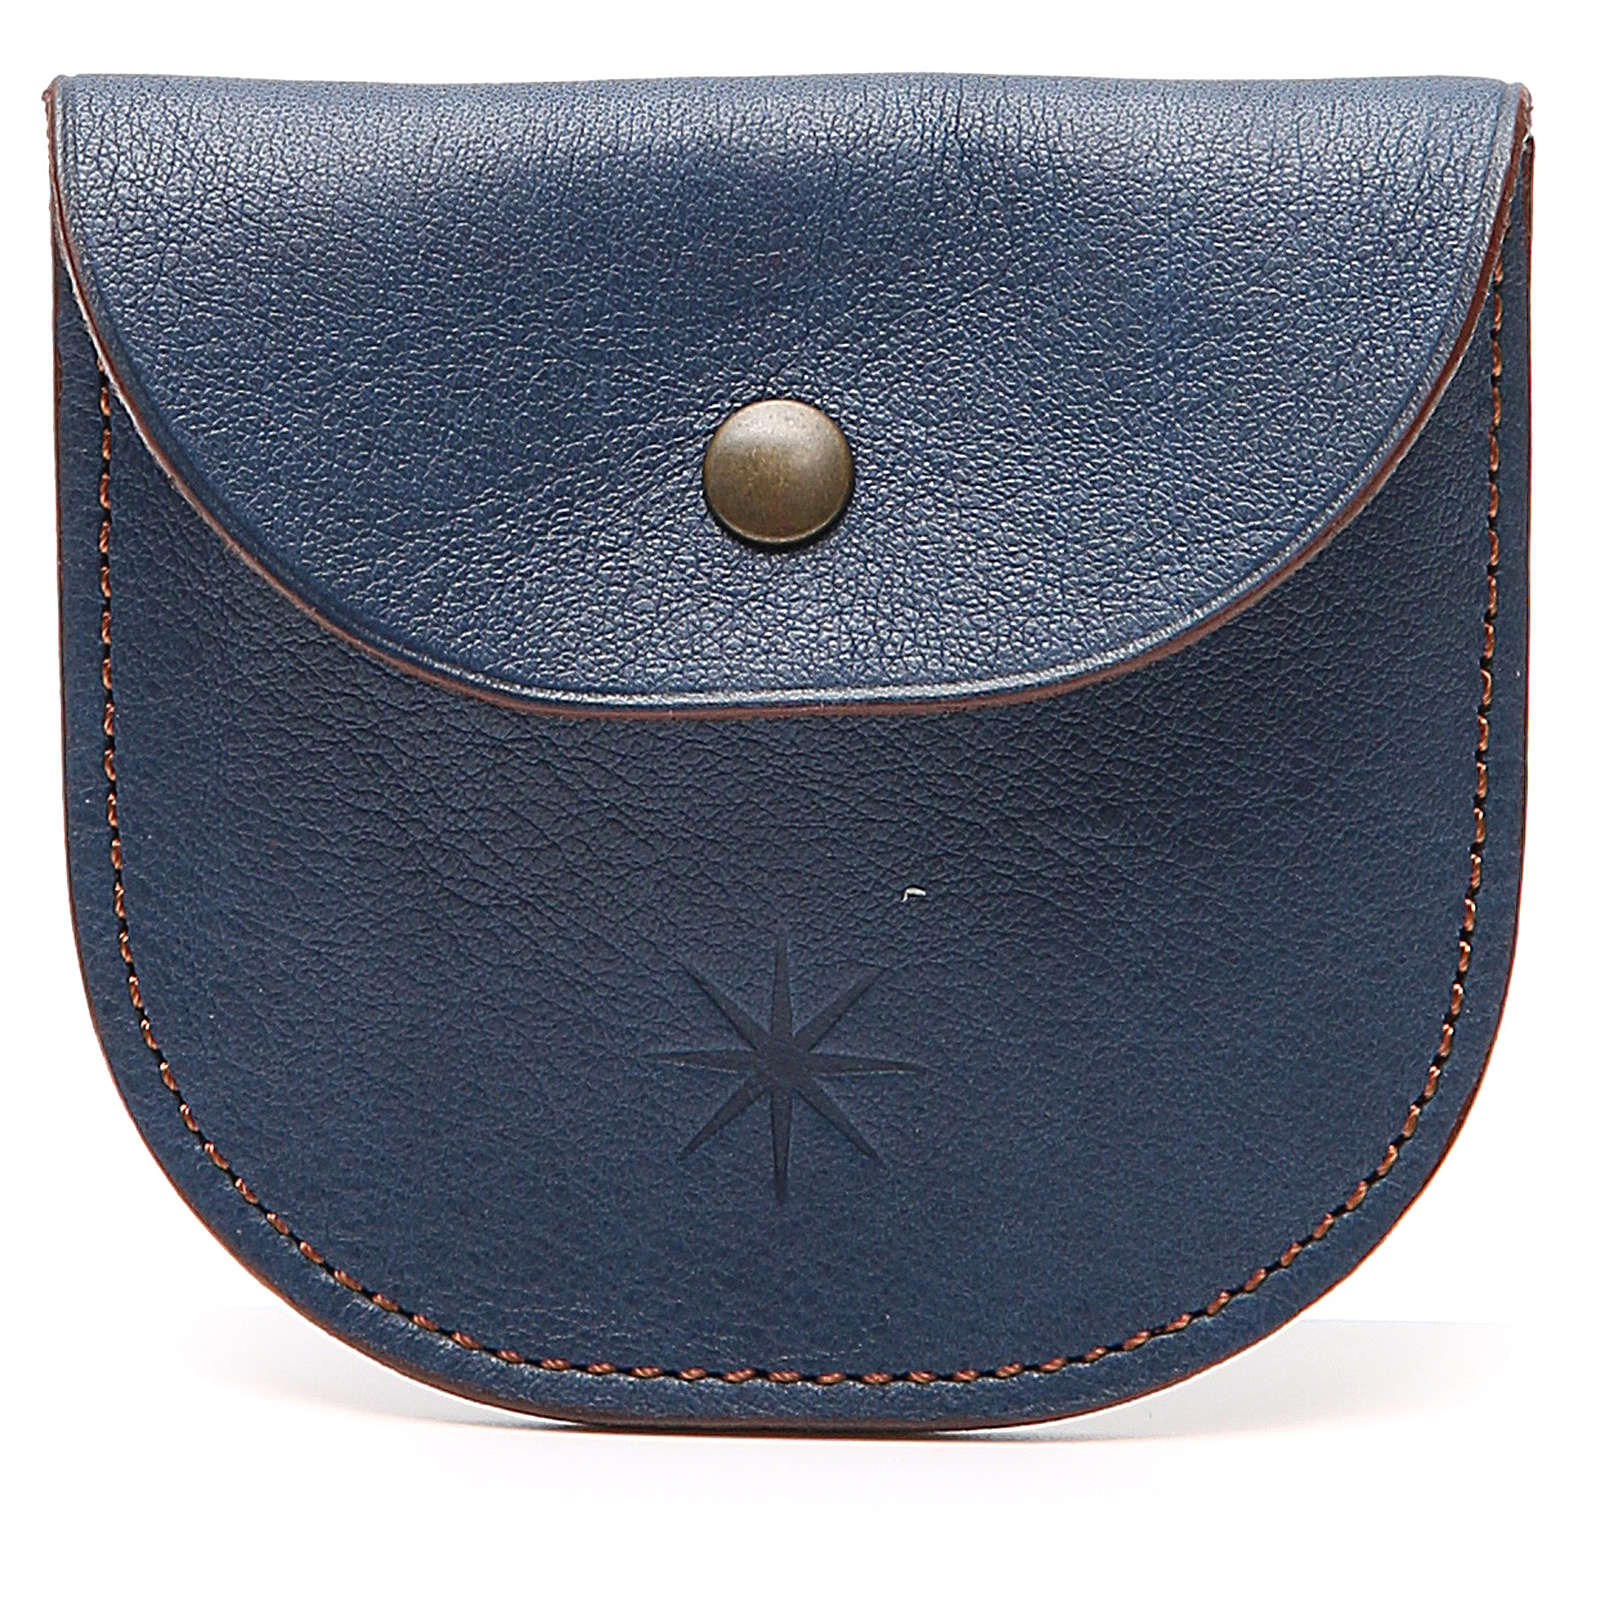 Rosary beads case in blue leather, Monks of Bethlèem 4